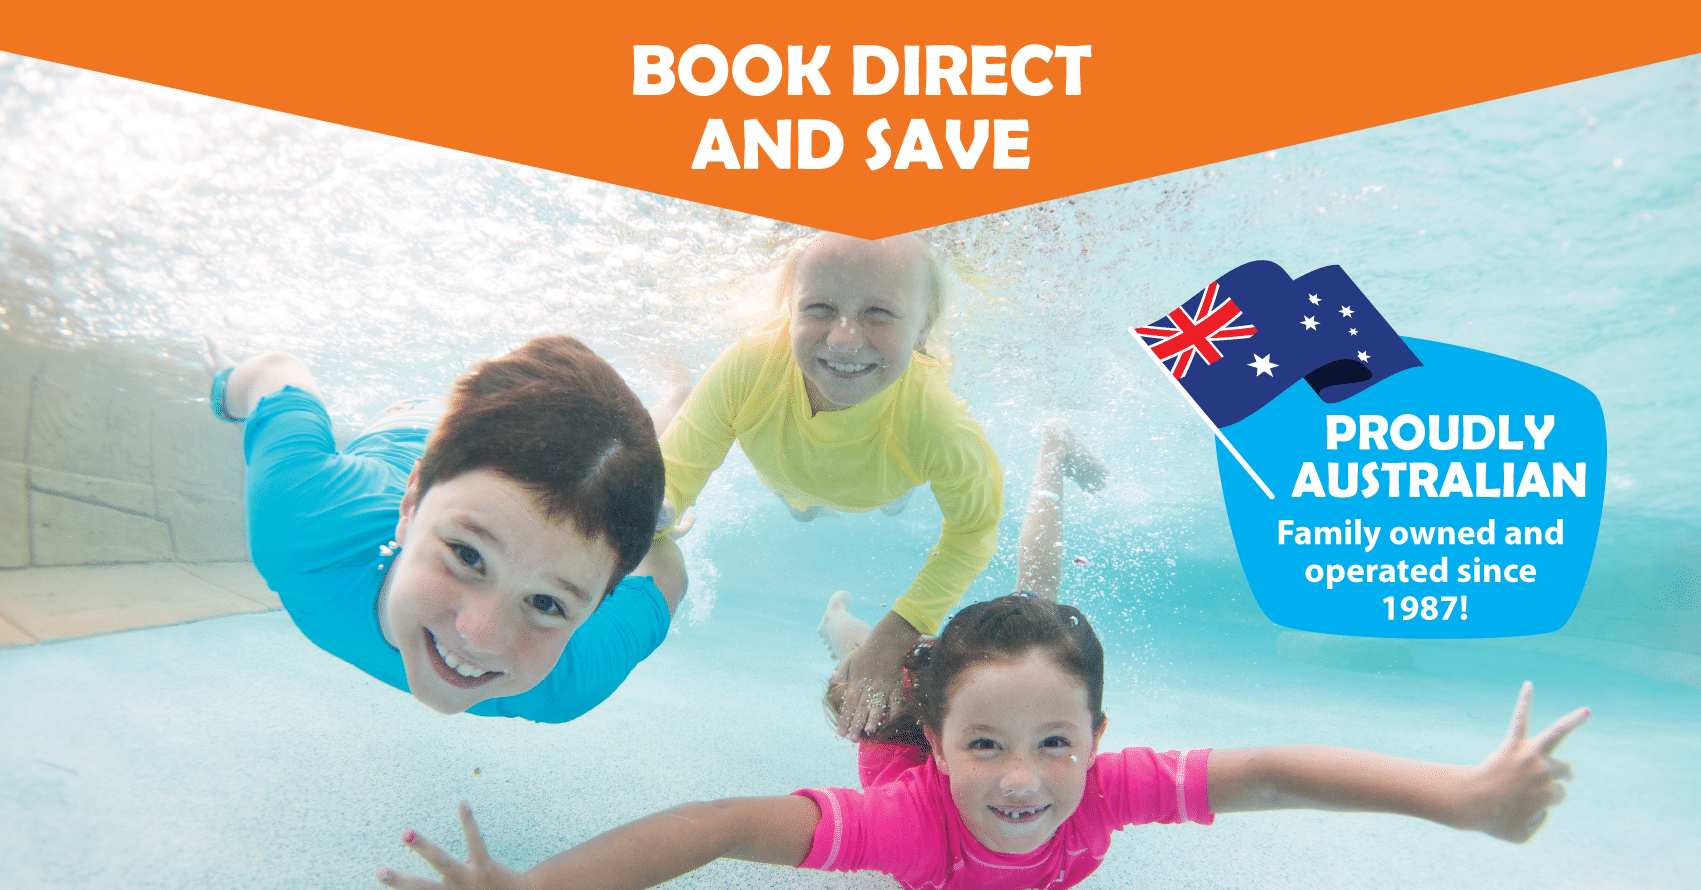 Book Direct with an Aussie Family Owned Business